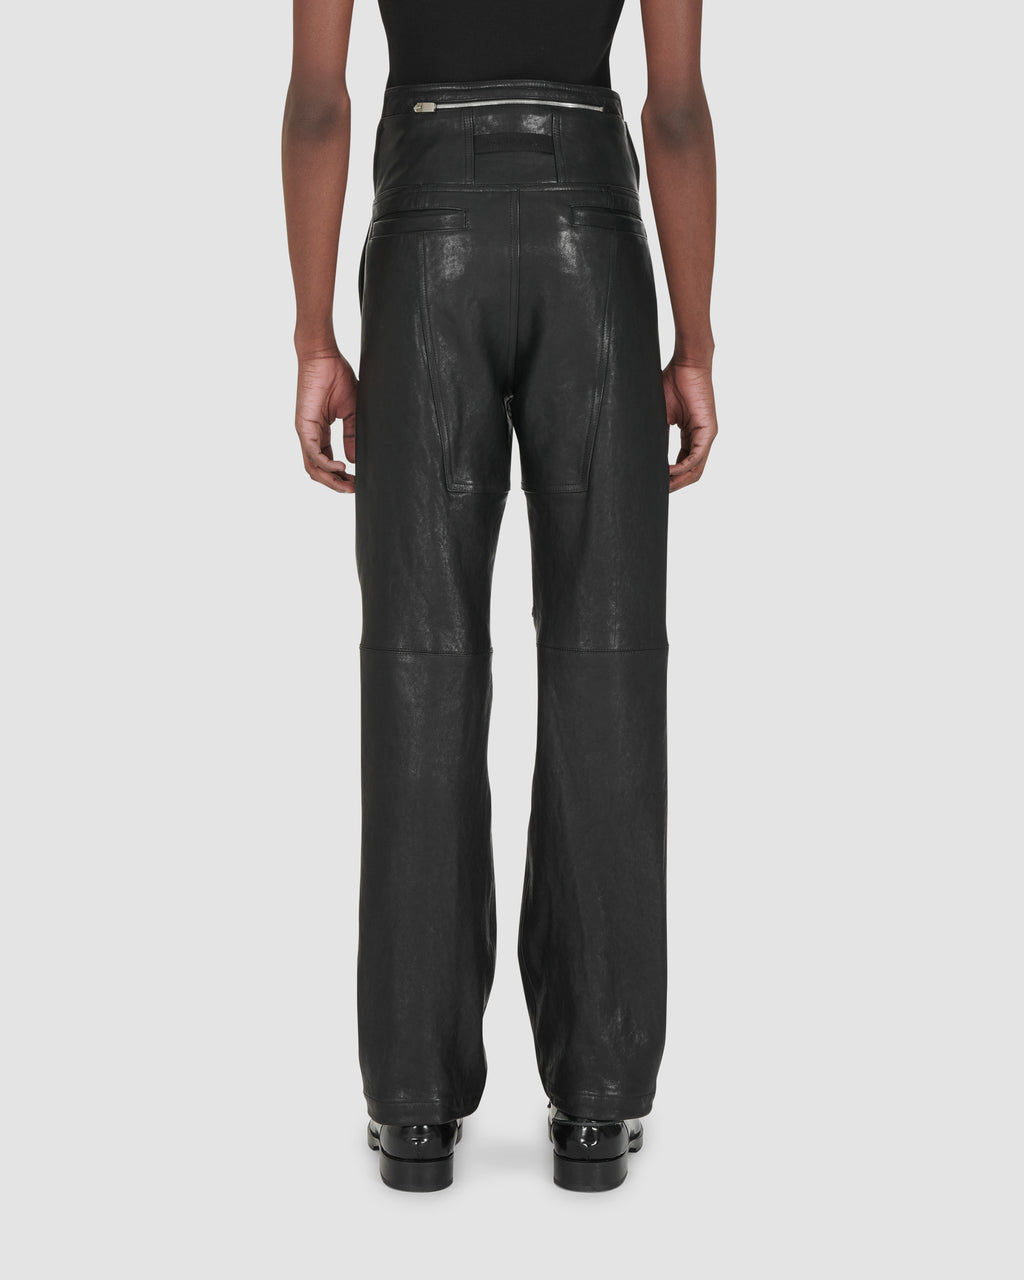 LEATHER FUORIPISTA PANT RUNWAY MADE TO ORDER